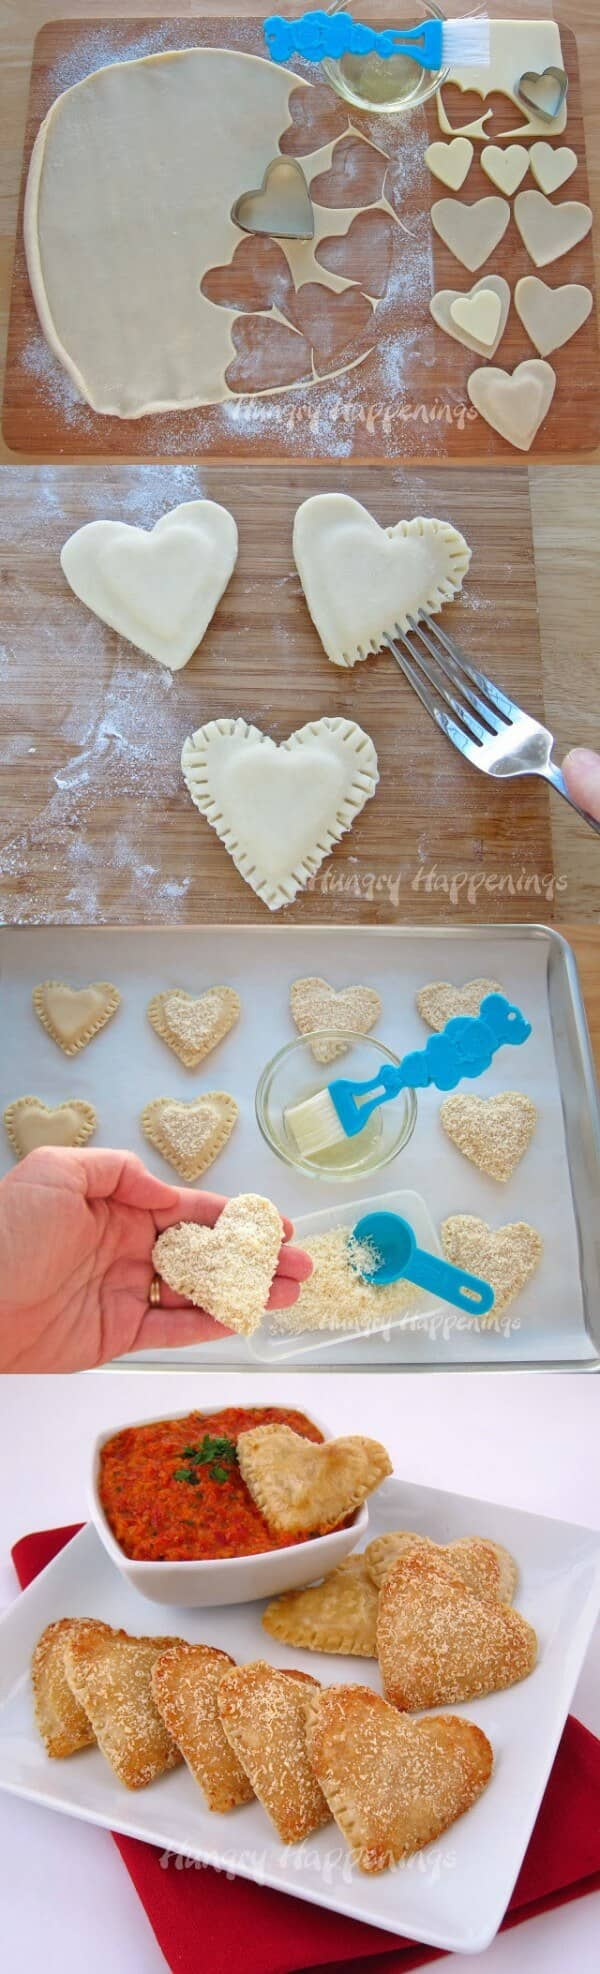 Mozzarella Hearts to Dip in Love